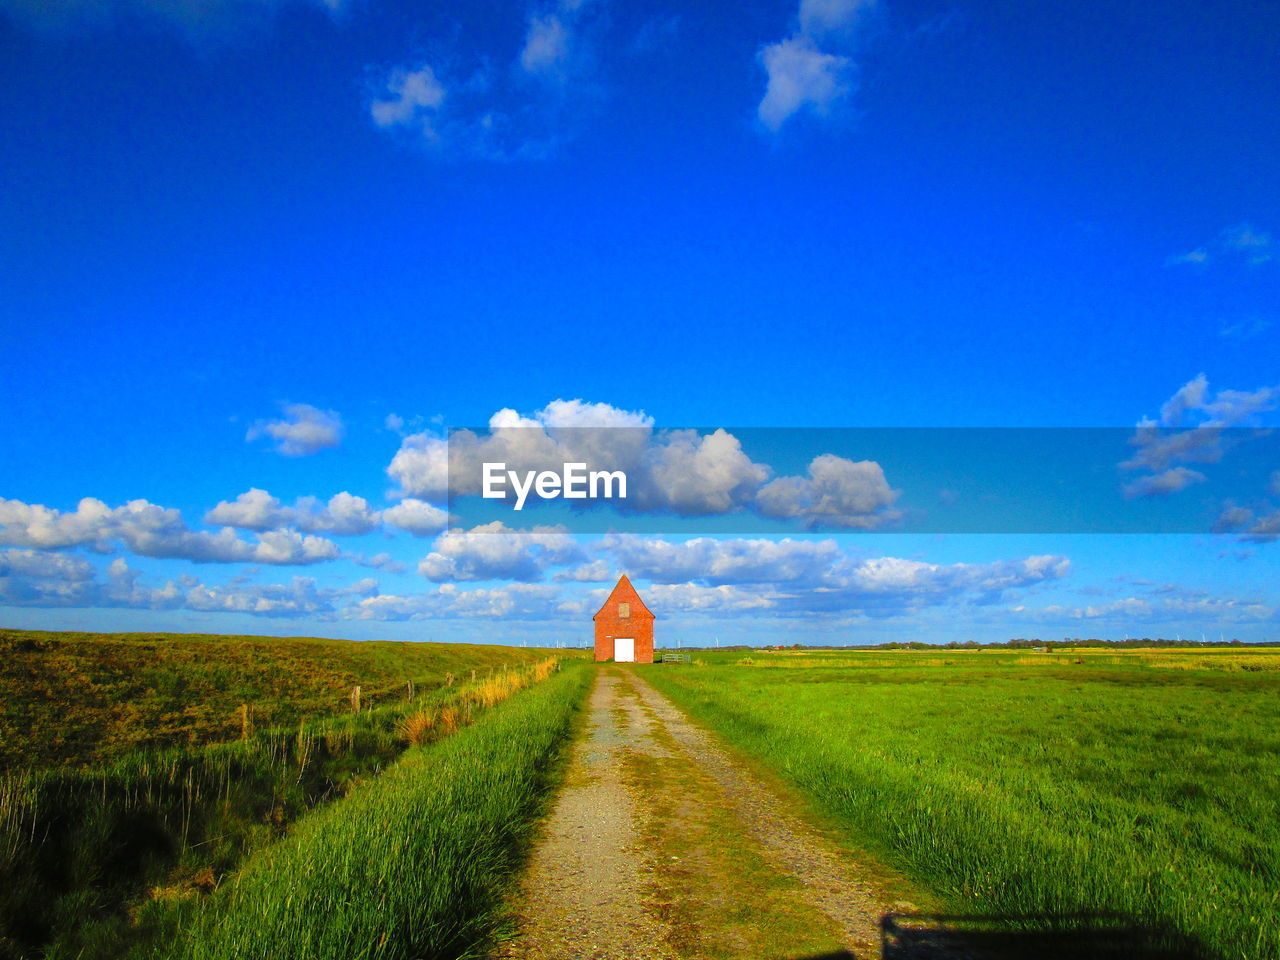 sky, land, cloud - sky, blue, landscape, field, direction, grass, the way forward, plant, environment, nature, scenics - nature, rural scene, beauty in nature, tranquility, tranquil scene, road, day, no people, outdoors, diminishing perspective